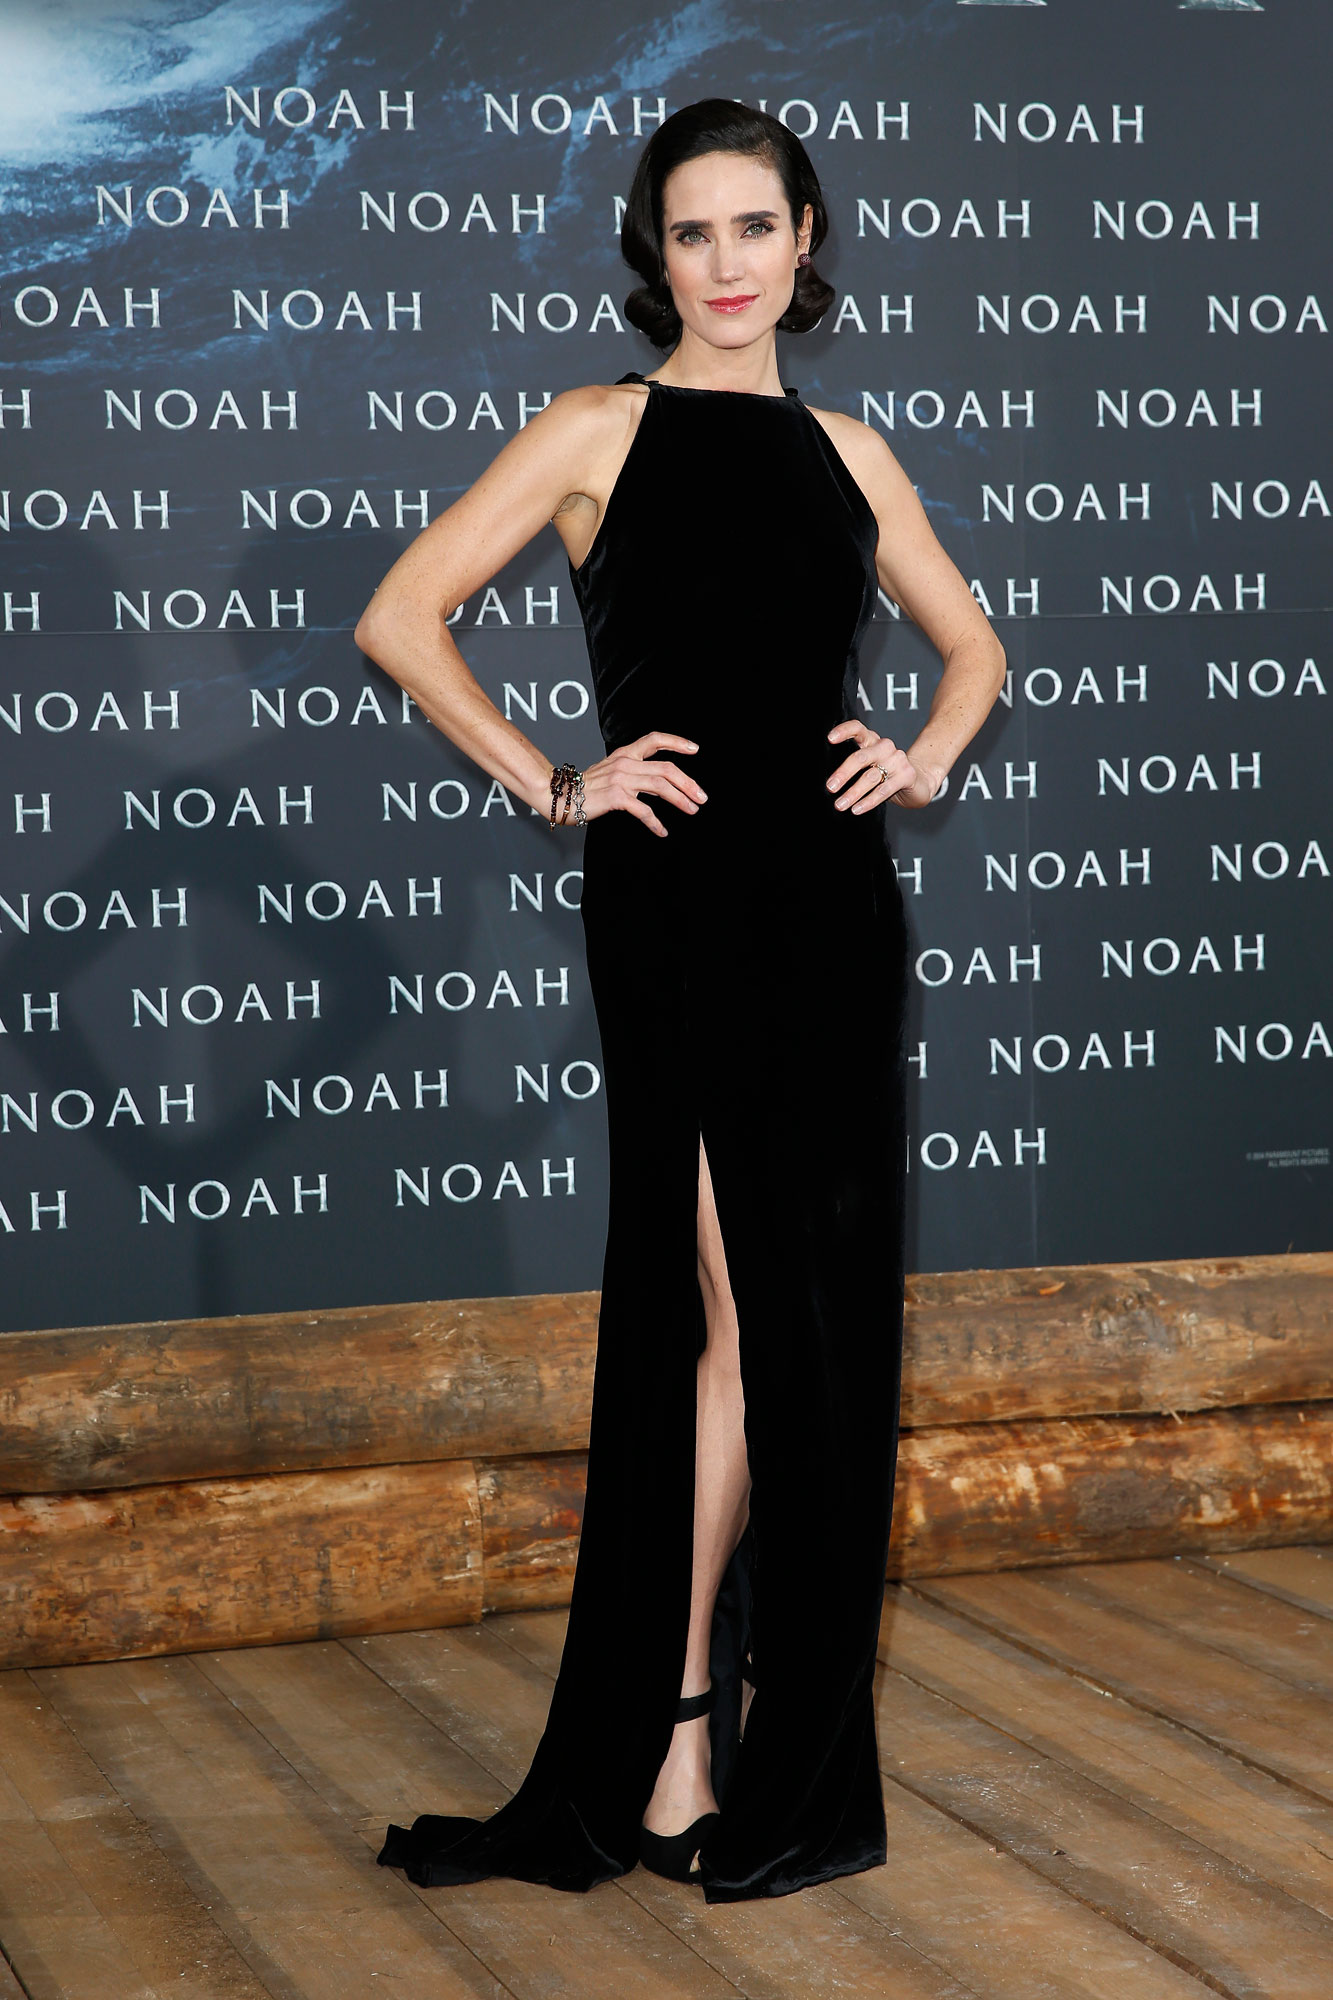 Love the look 1: Jennifer Connelly at the premiere of Noah